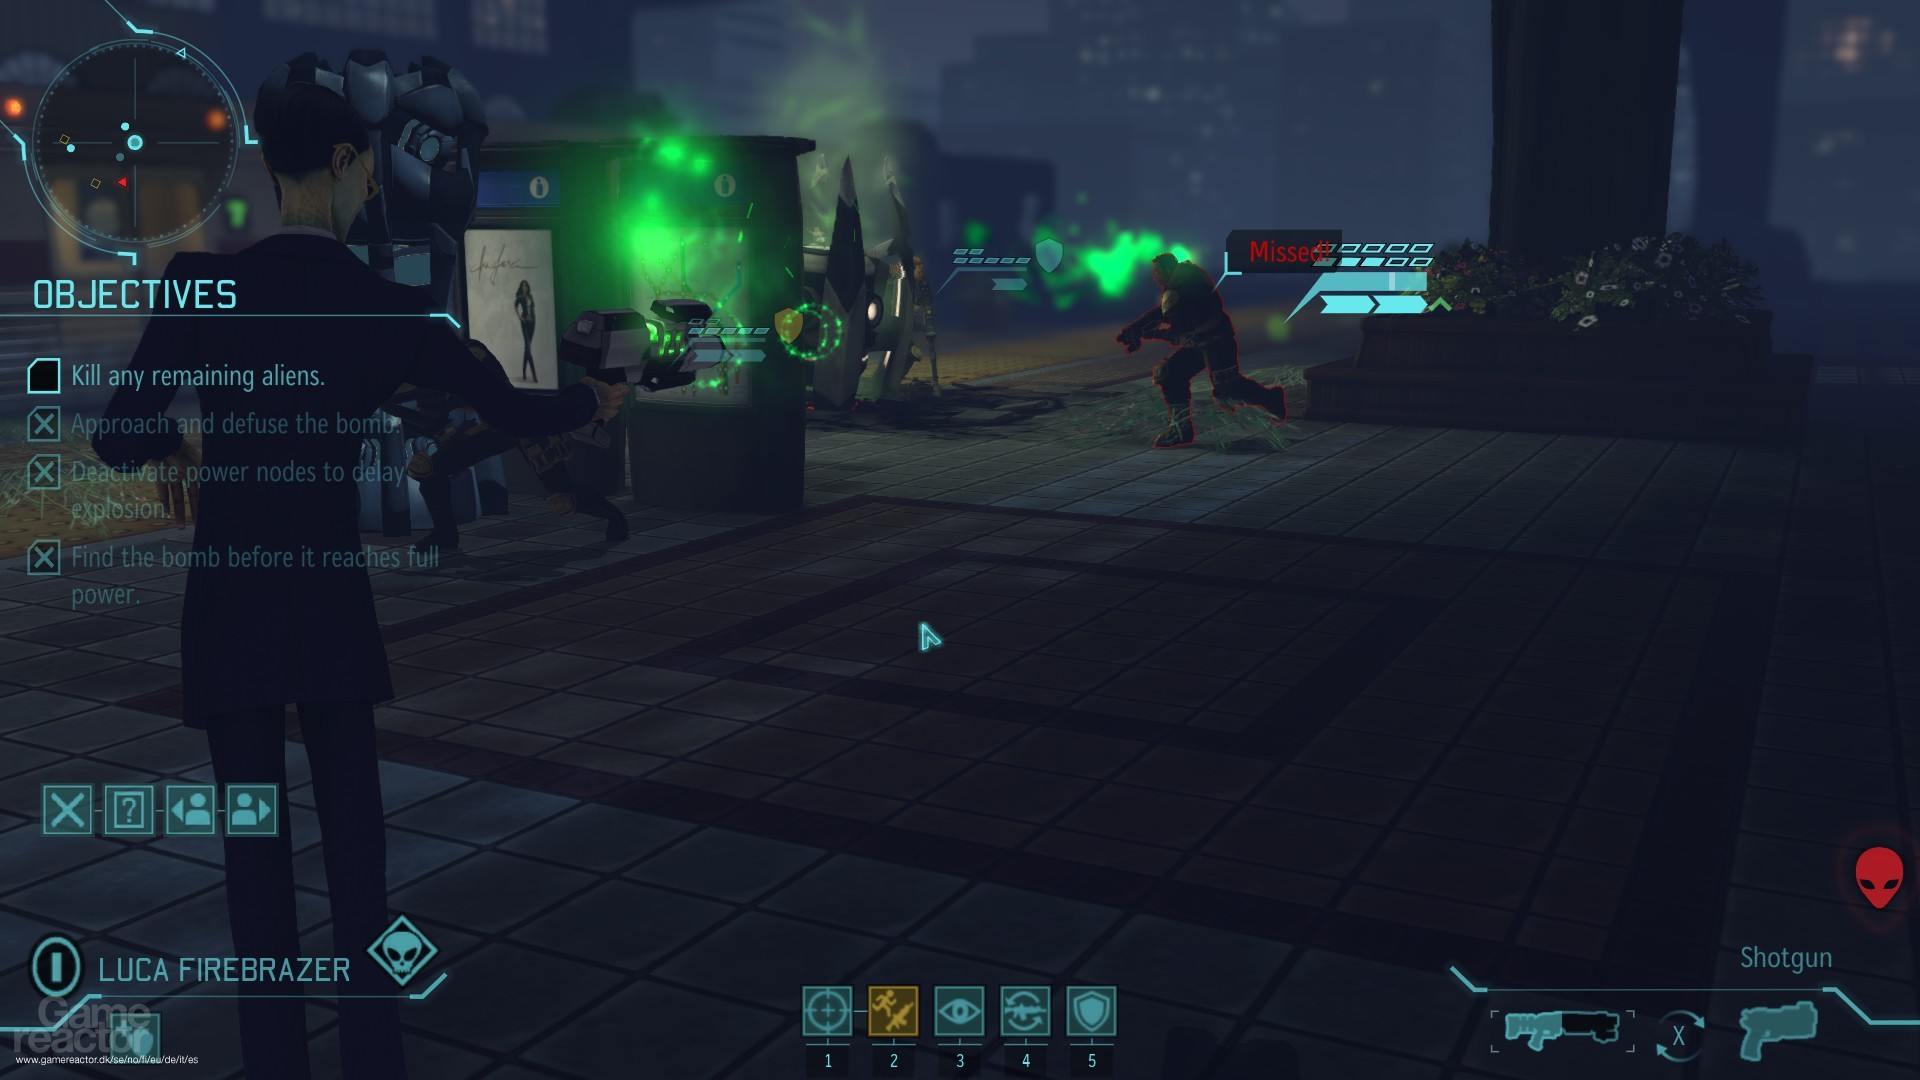 Invading aliens are just one of the many challenges youll have to deal with as the commander of xcom